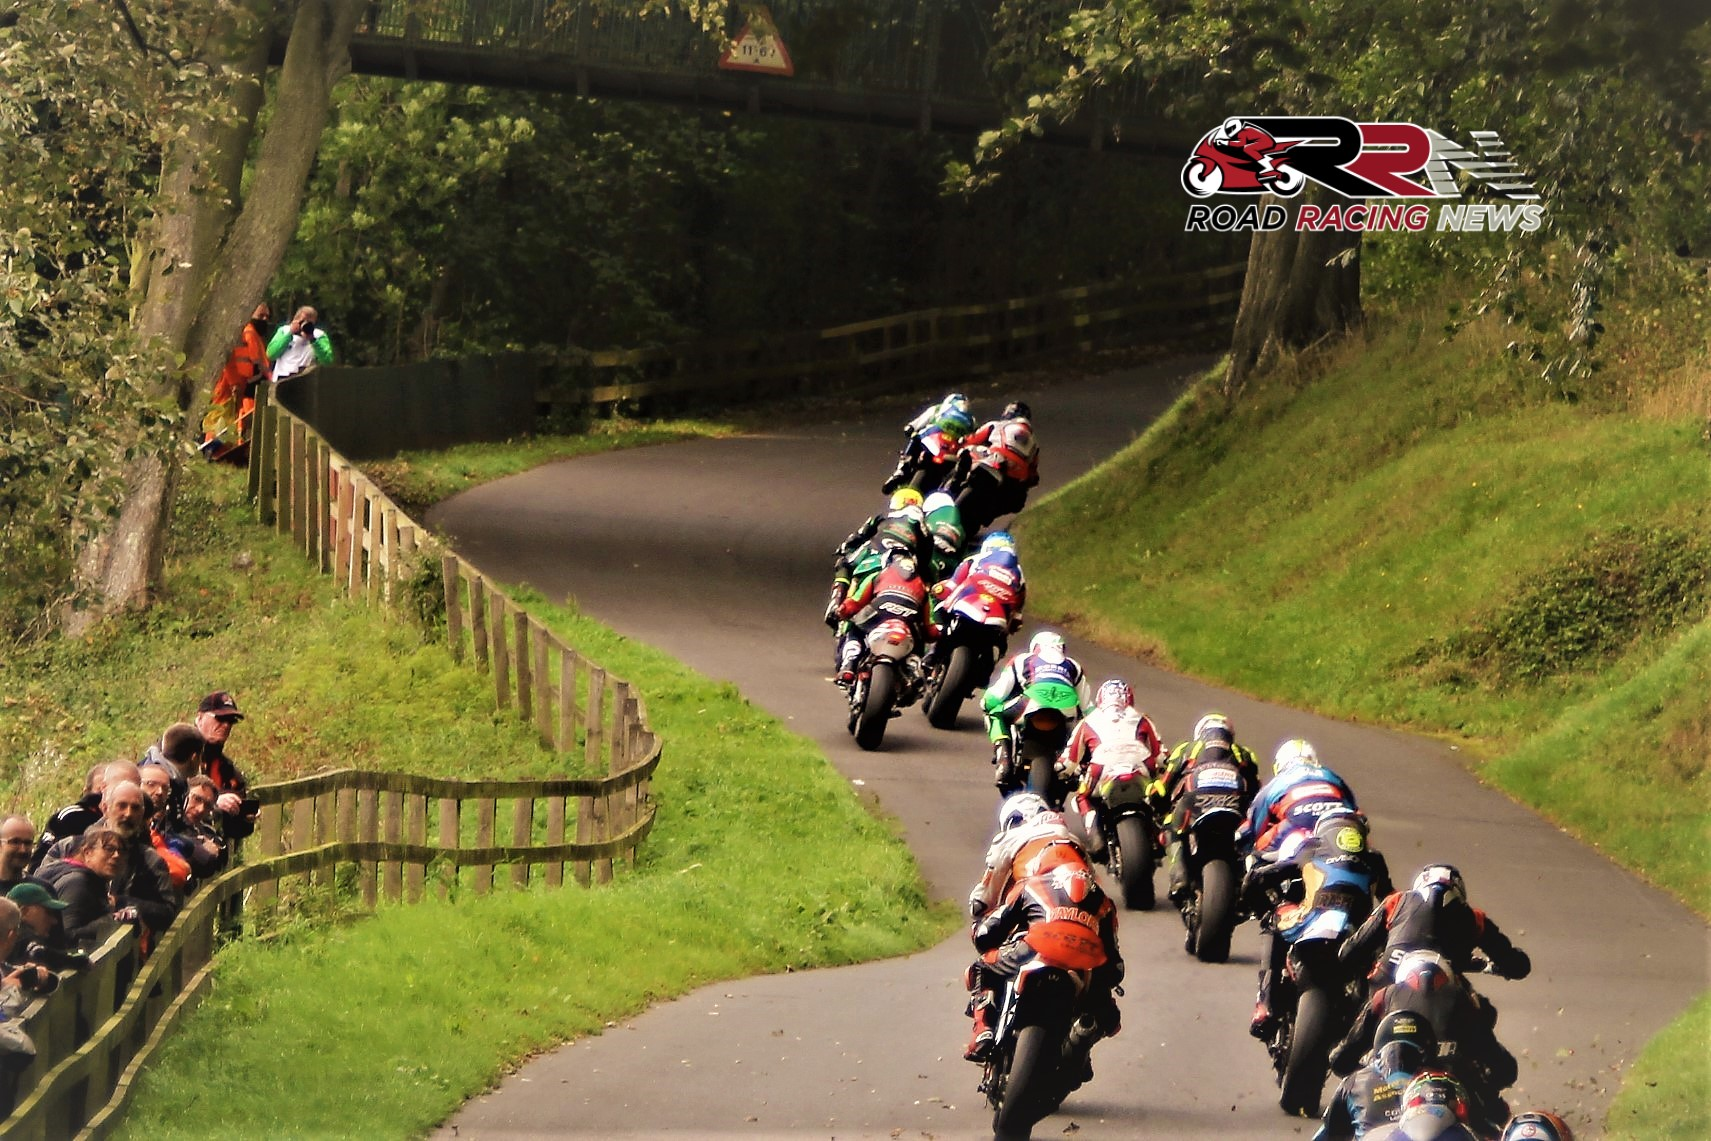 Oliver's Mount Racing Organisers Issue Update On September Events Potential